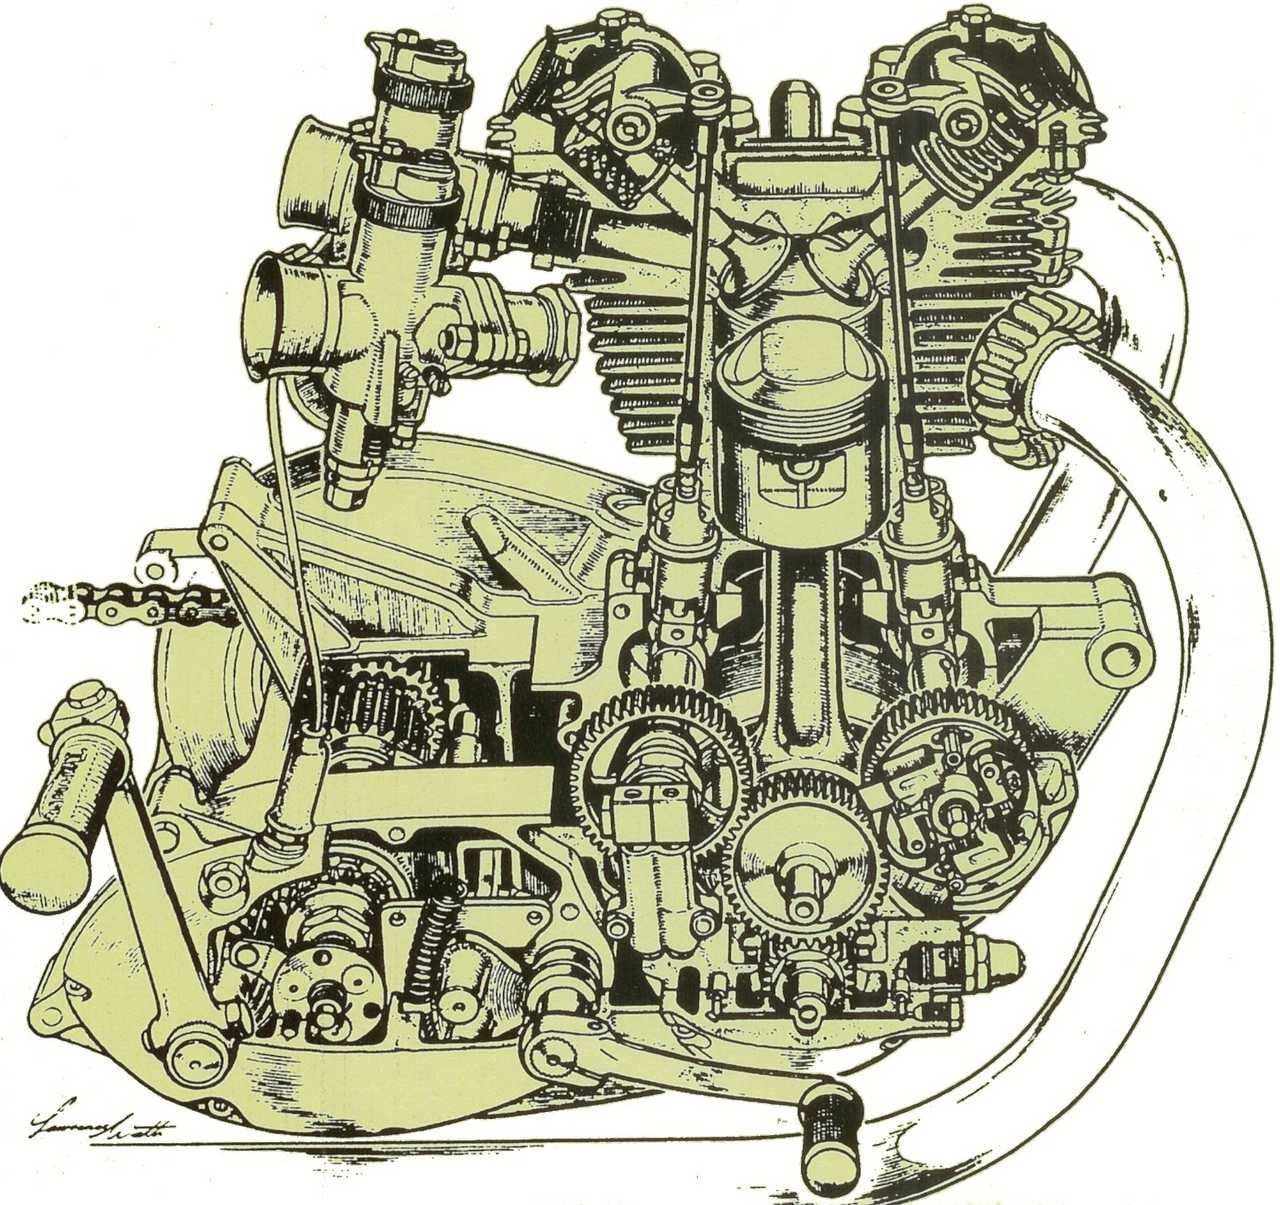 Triumph Pre Unit Cutaway Engine Vertical Twin Motorcycle Engine Motorcycle Illustration Engineering